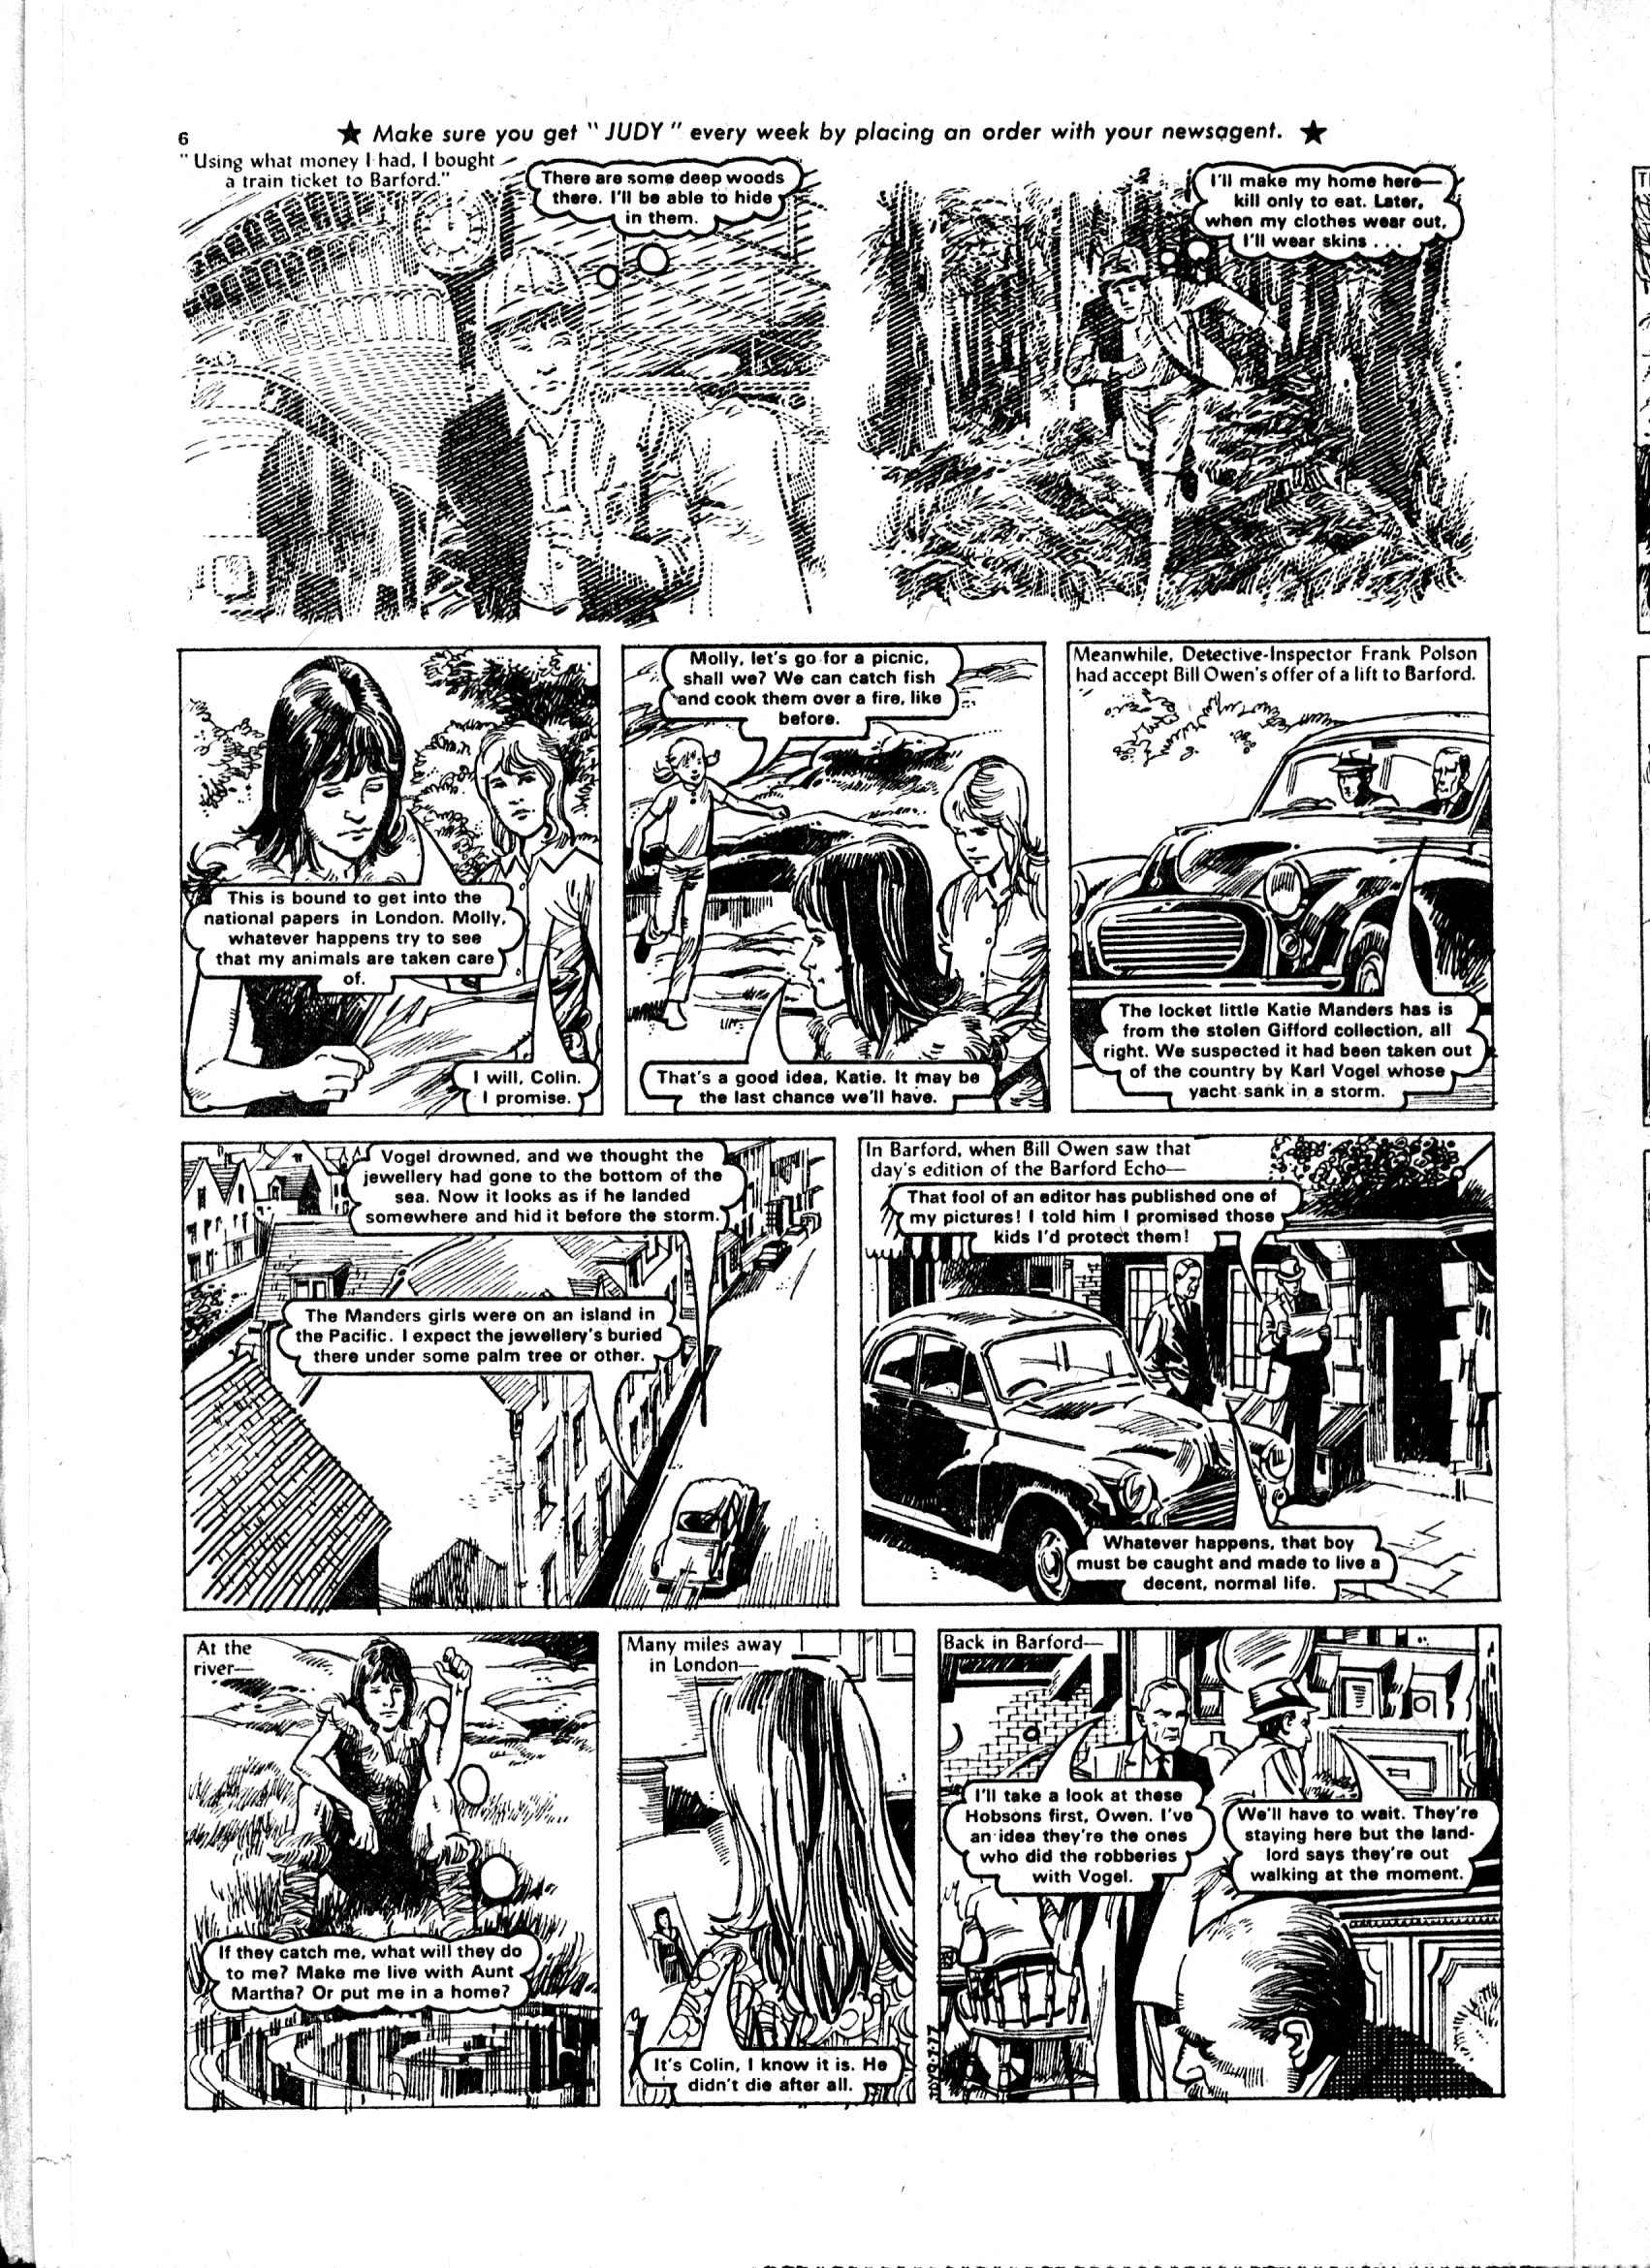 Read online Judy comic -  Issue #913 - 6